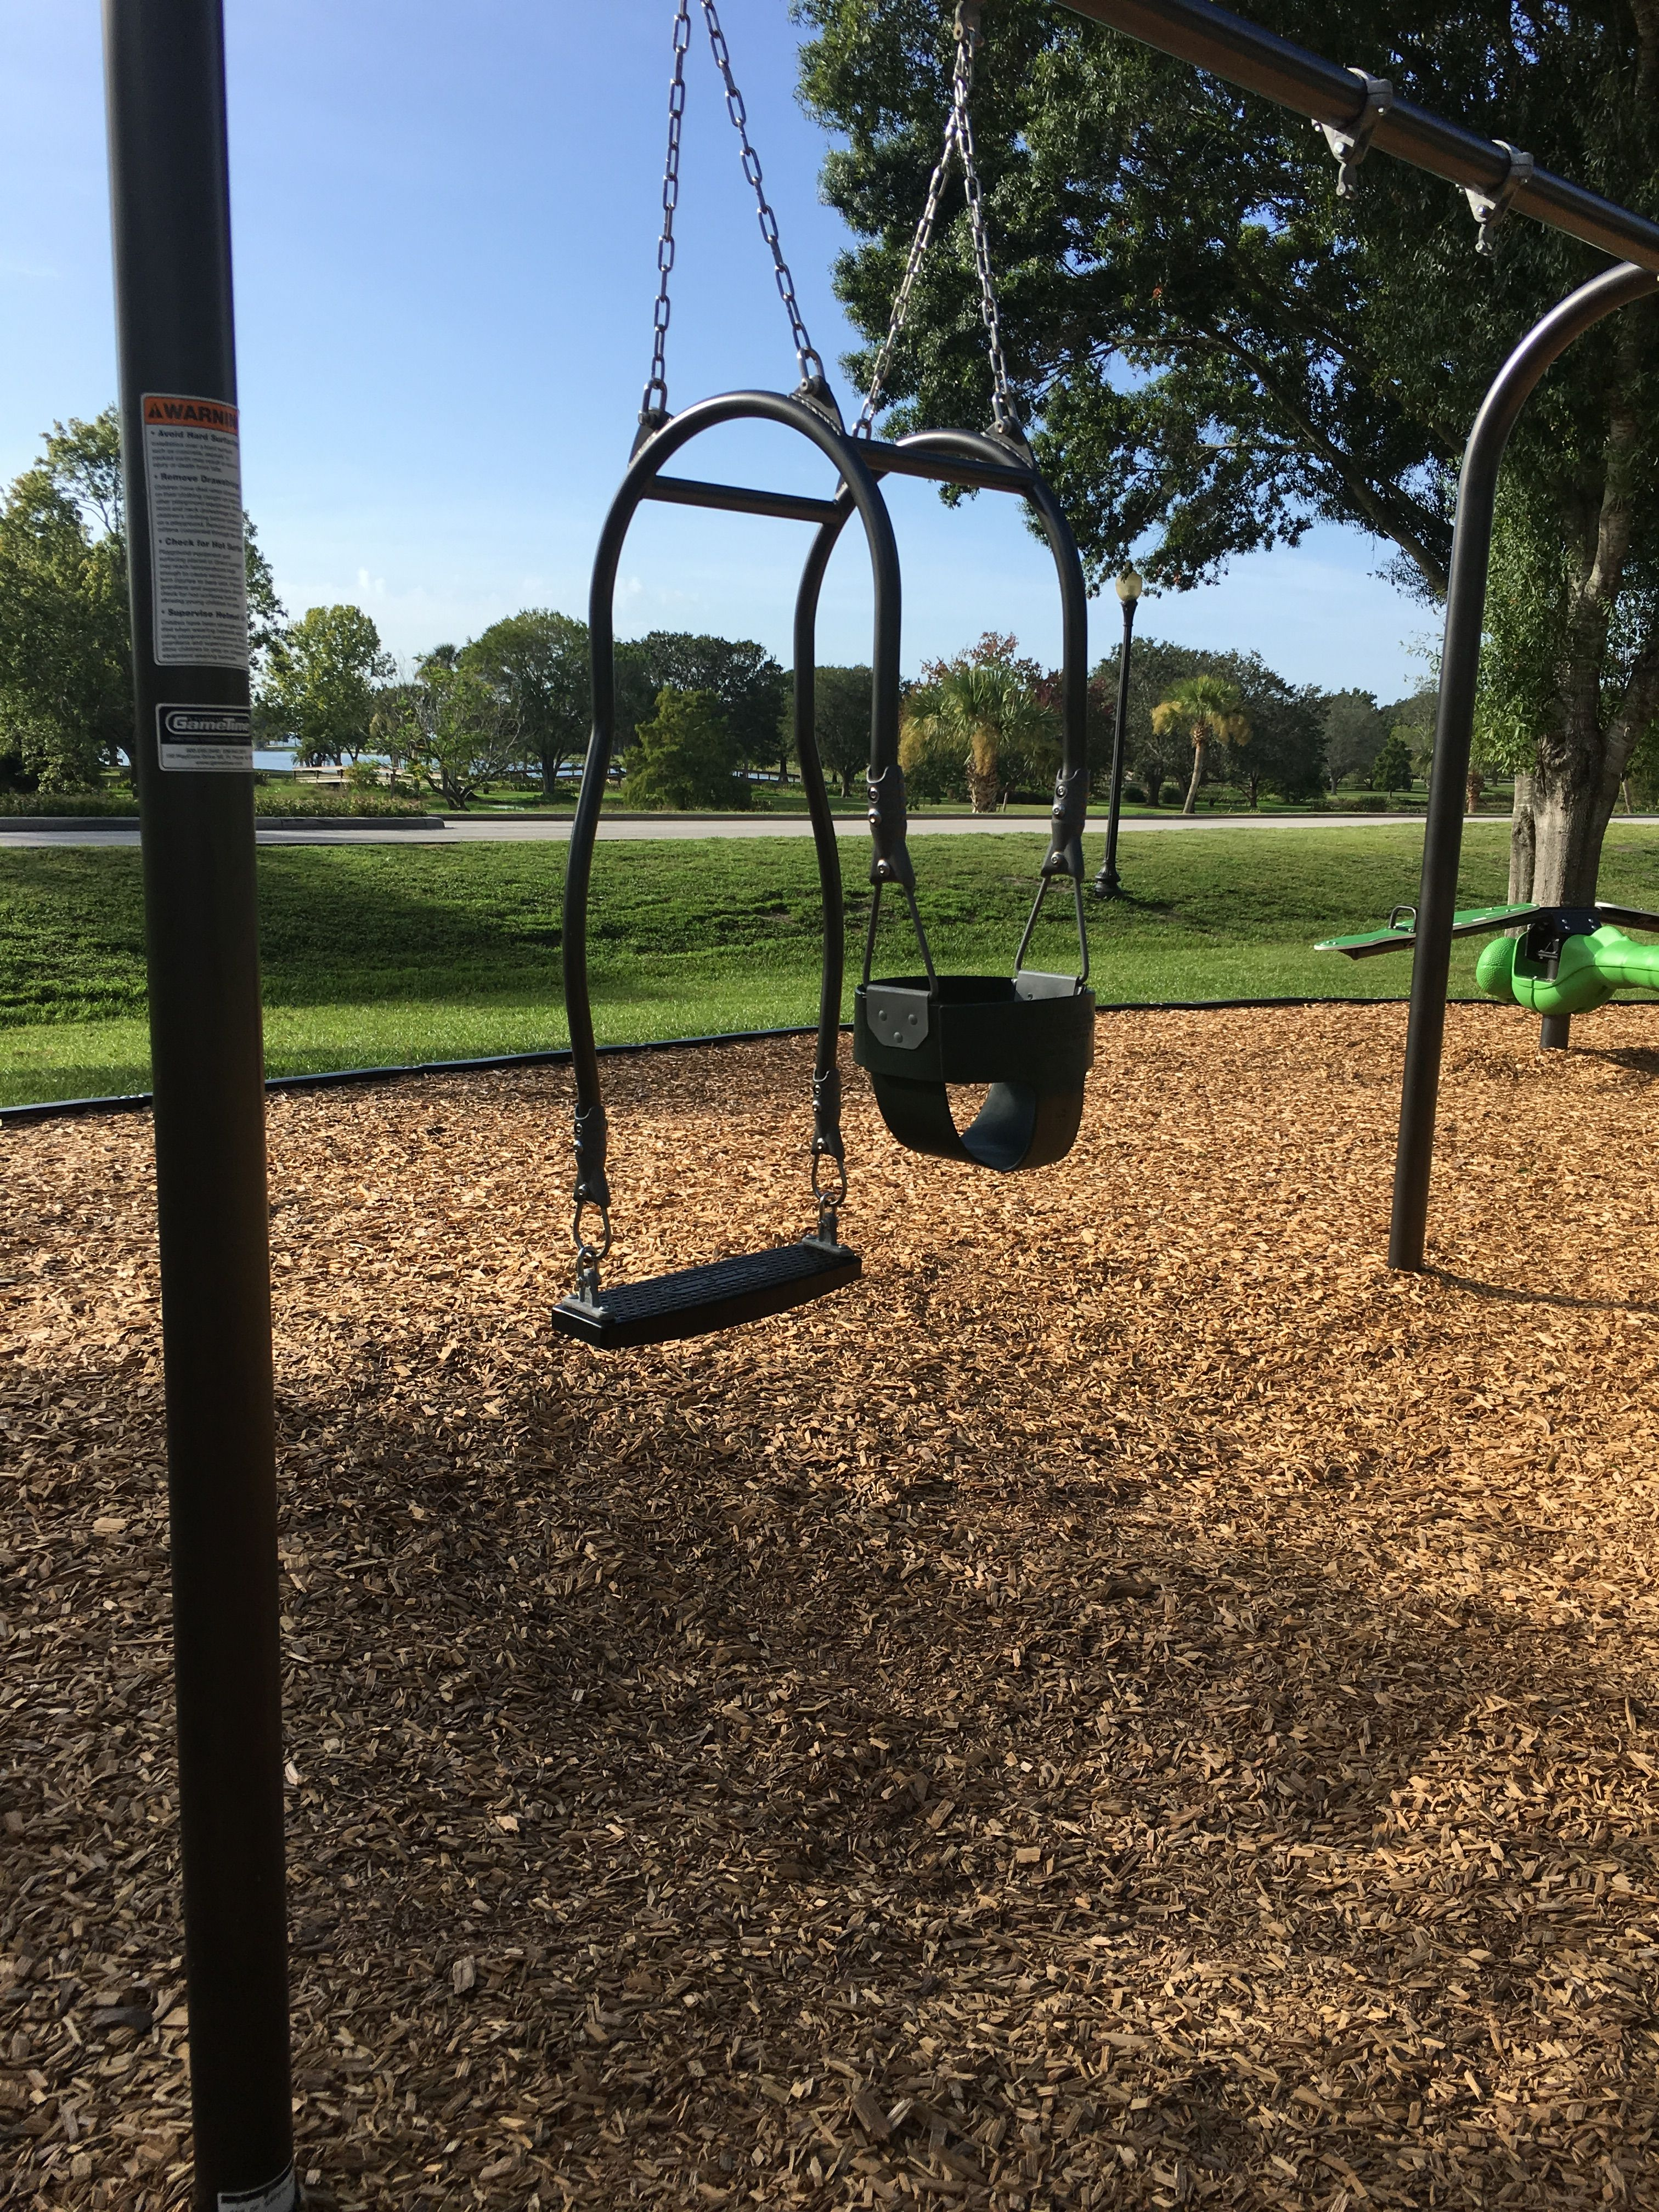 Amazing Mommy Me Swings They Installed At The New Park Backyard Play Baby Swings Baby Love